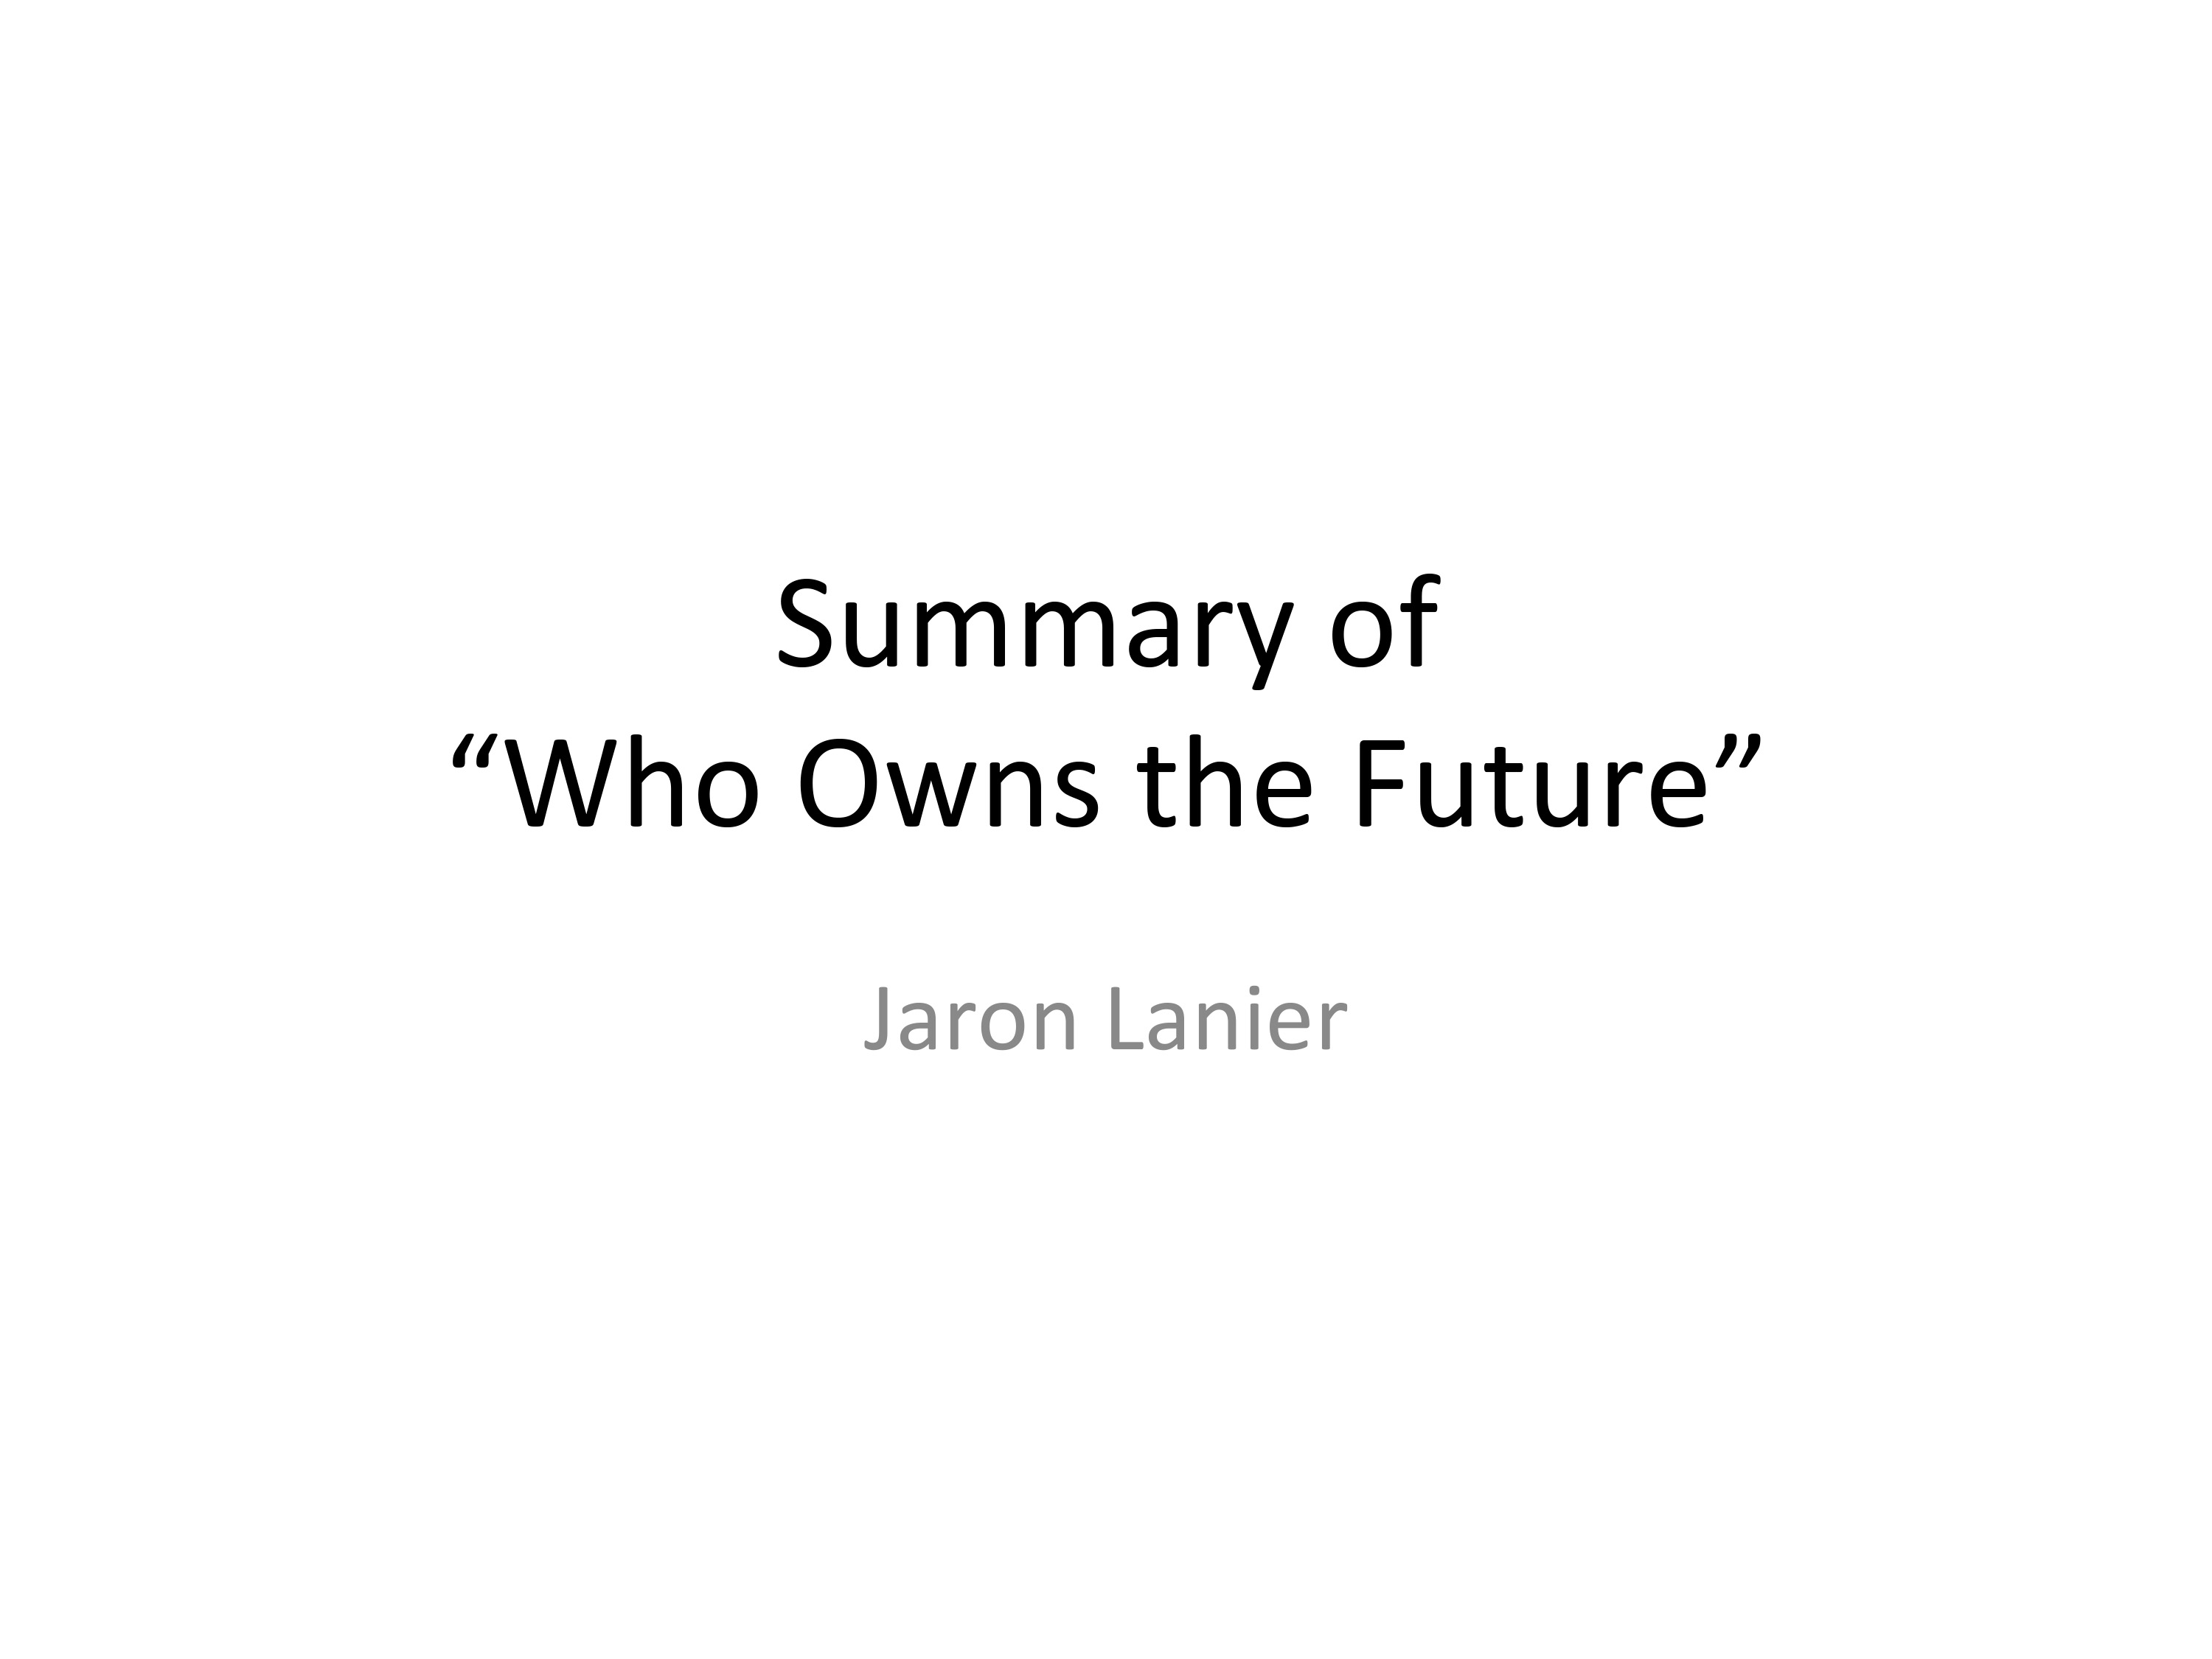 Summary of Who Owns the Future page 1